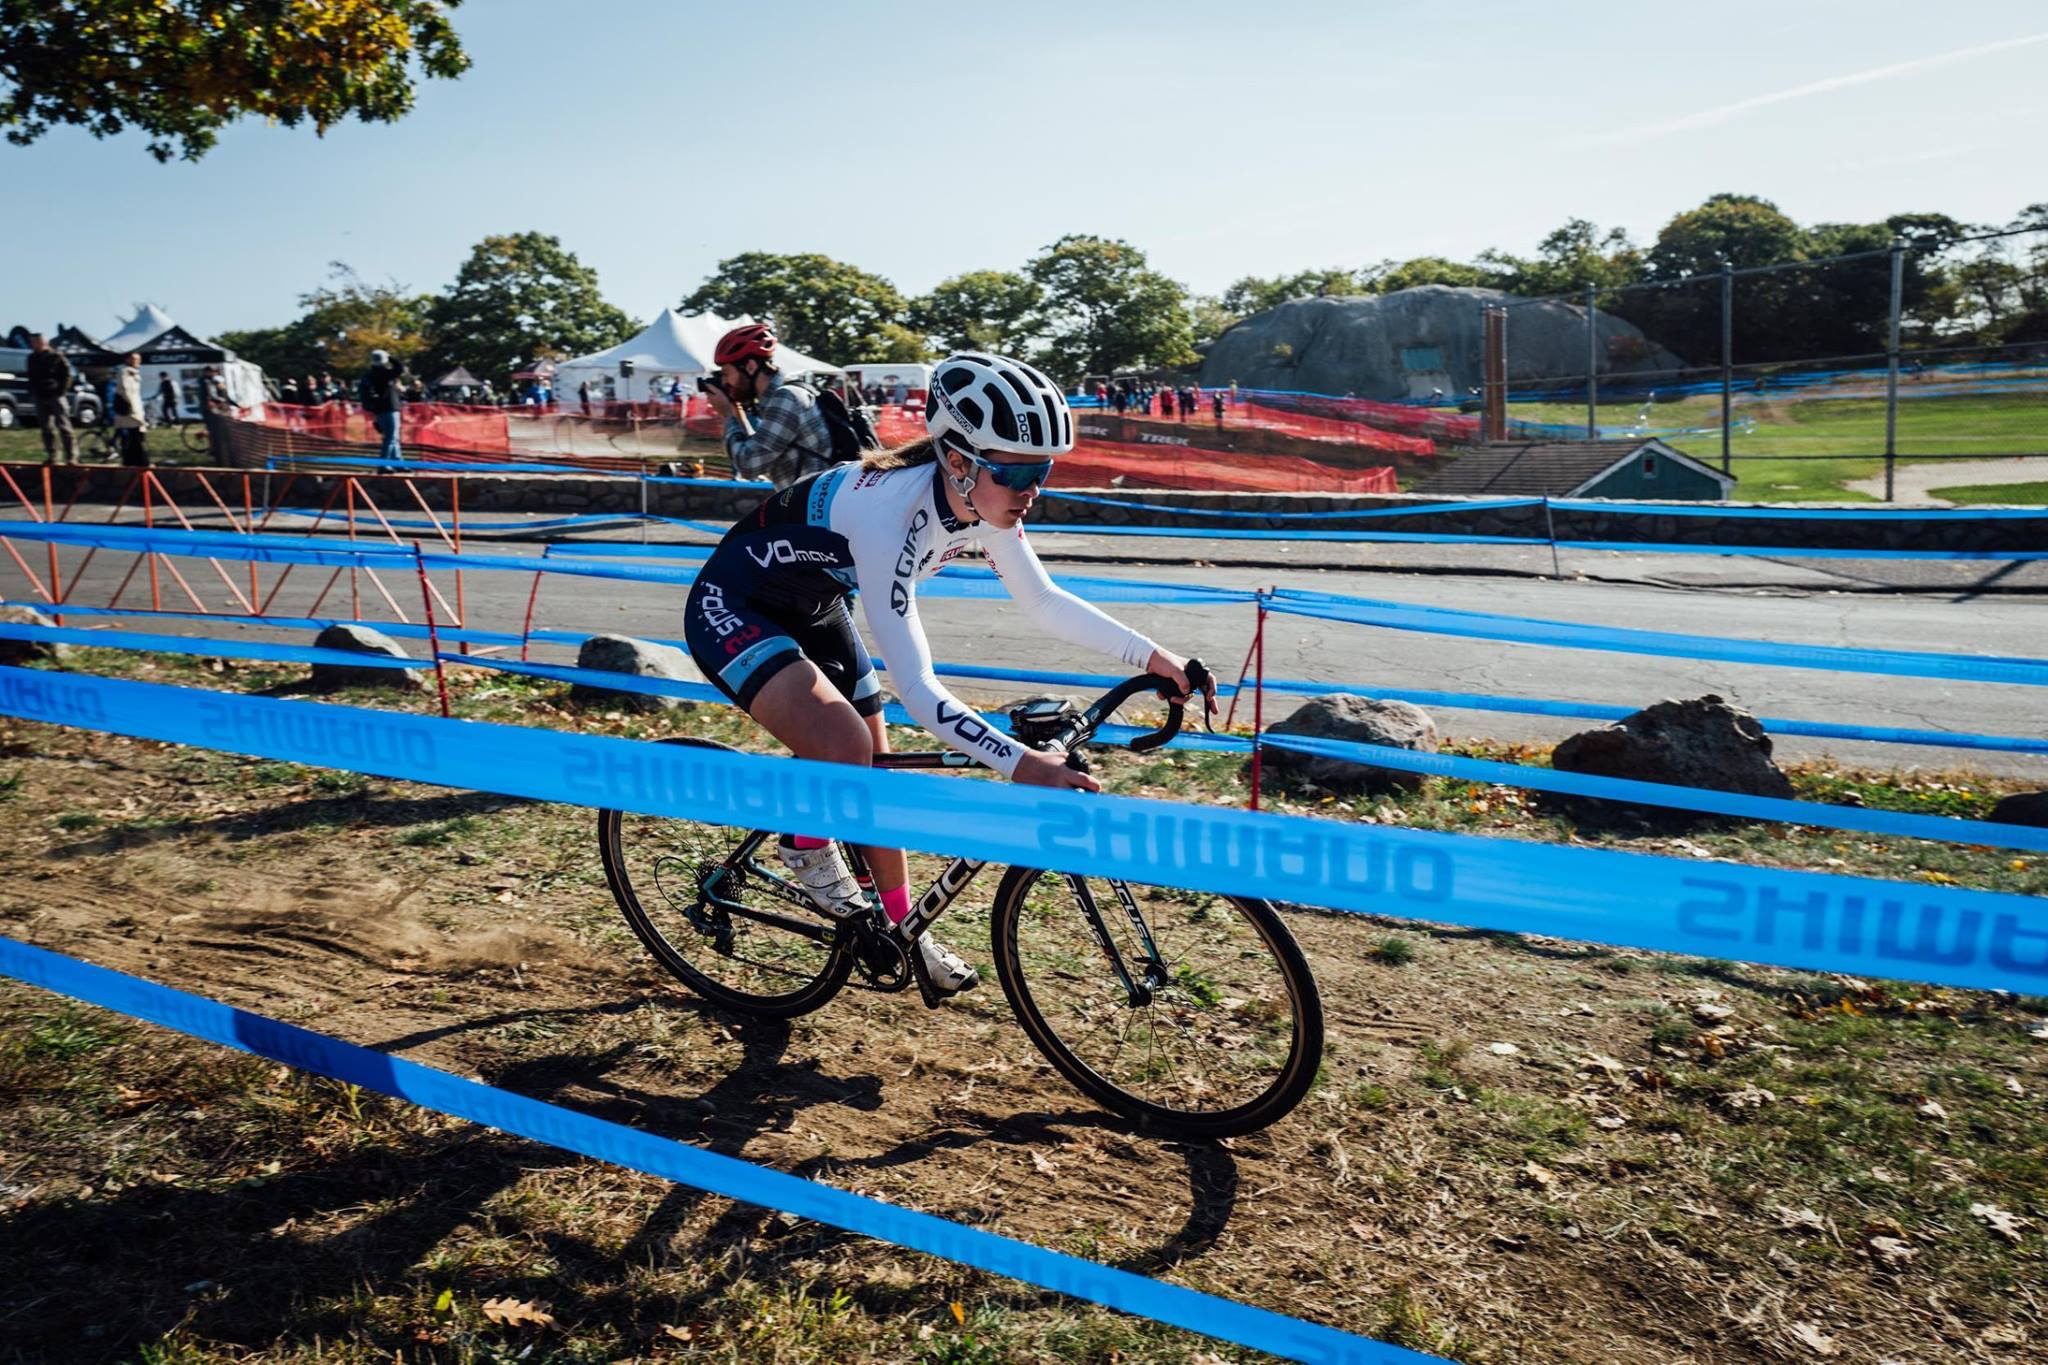 Katie Johnson raced in a large Cat 4 field of 78 riders. Photo by Health Warrior/Garneau.